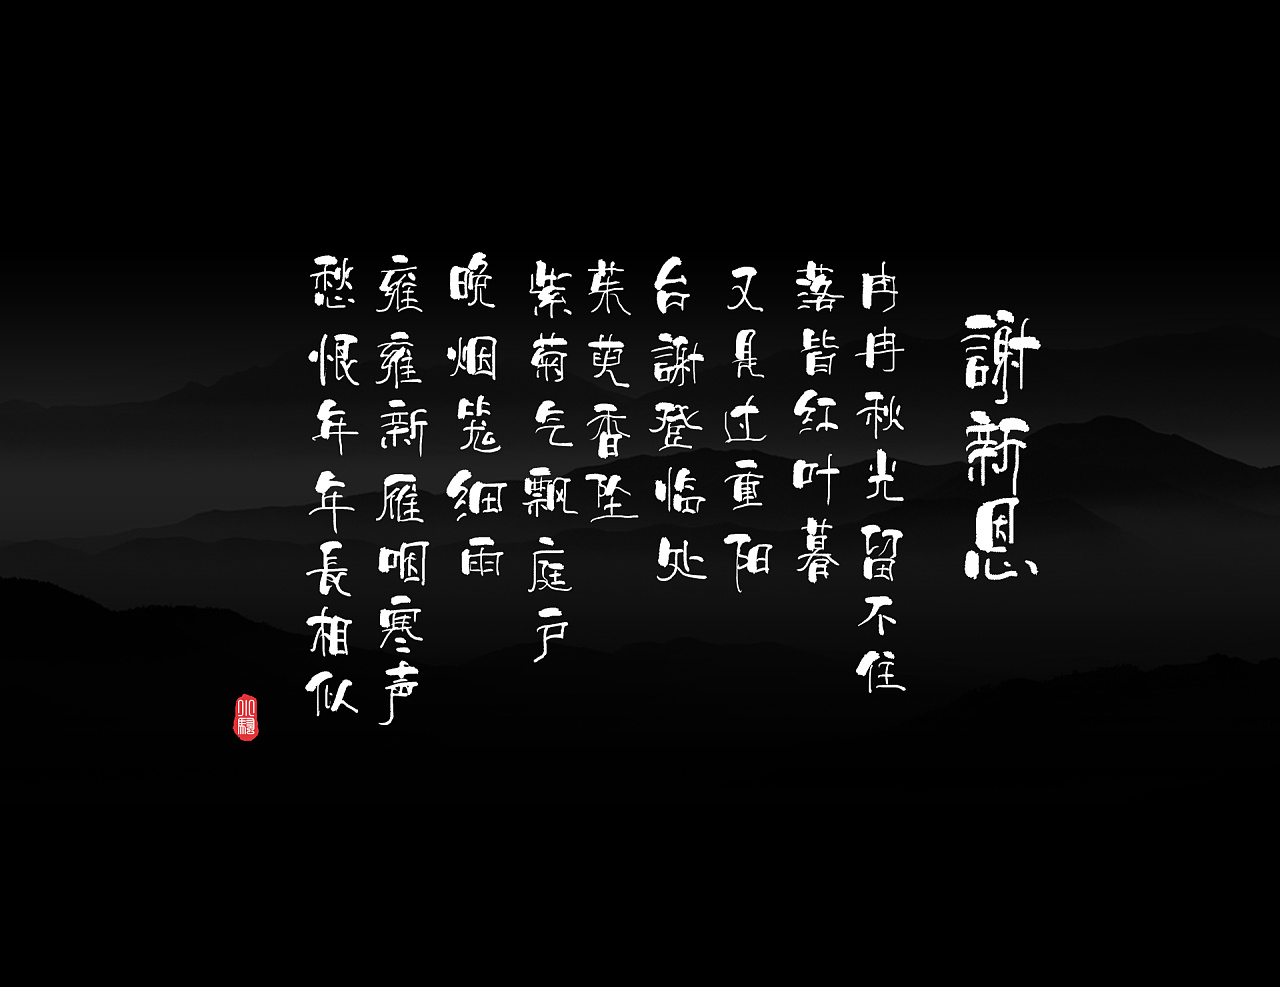 chinesefontdesign.com 2018 02 04 12 38 06 064077 50P Li Sao of Tang Song style Chinese Design Inspiration